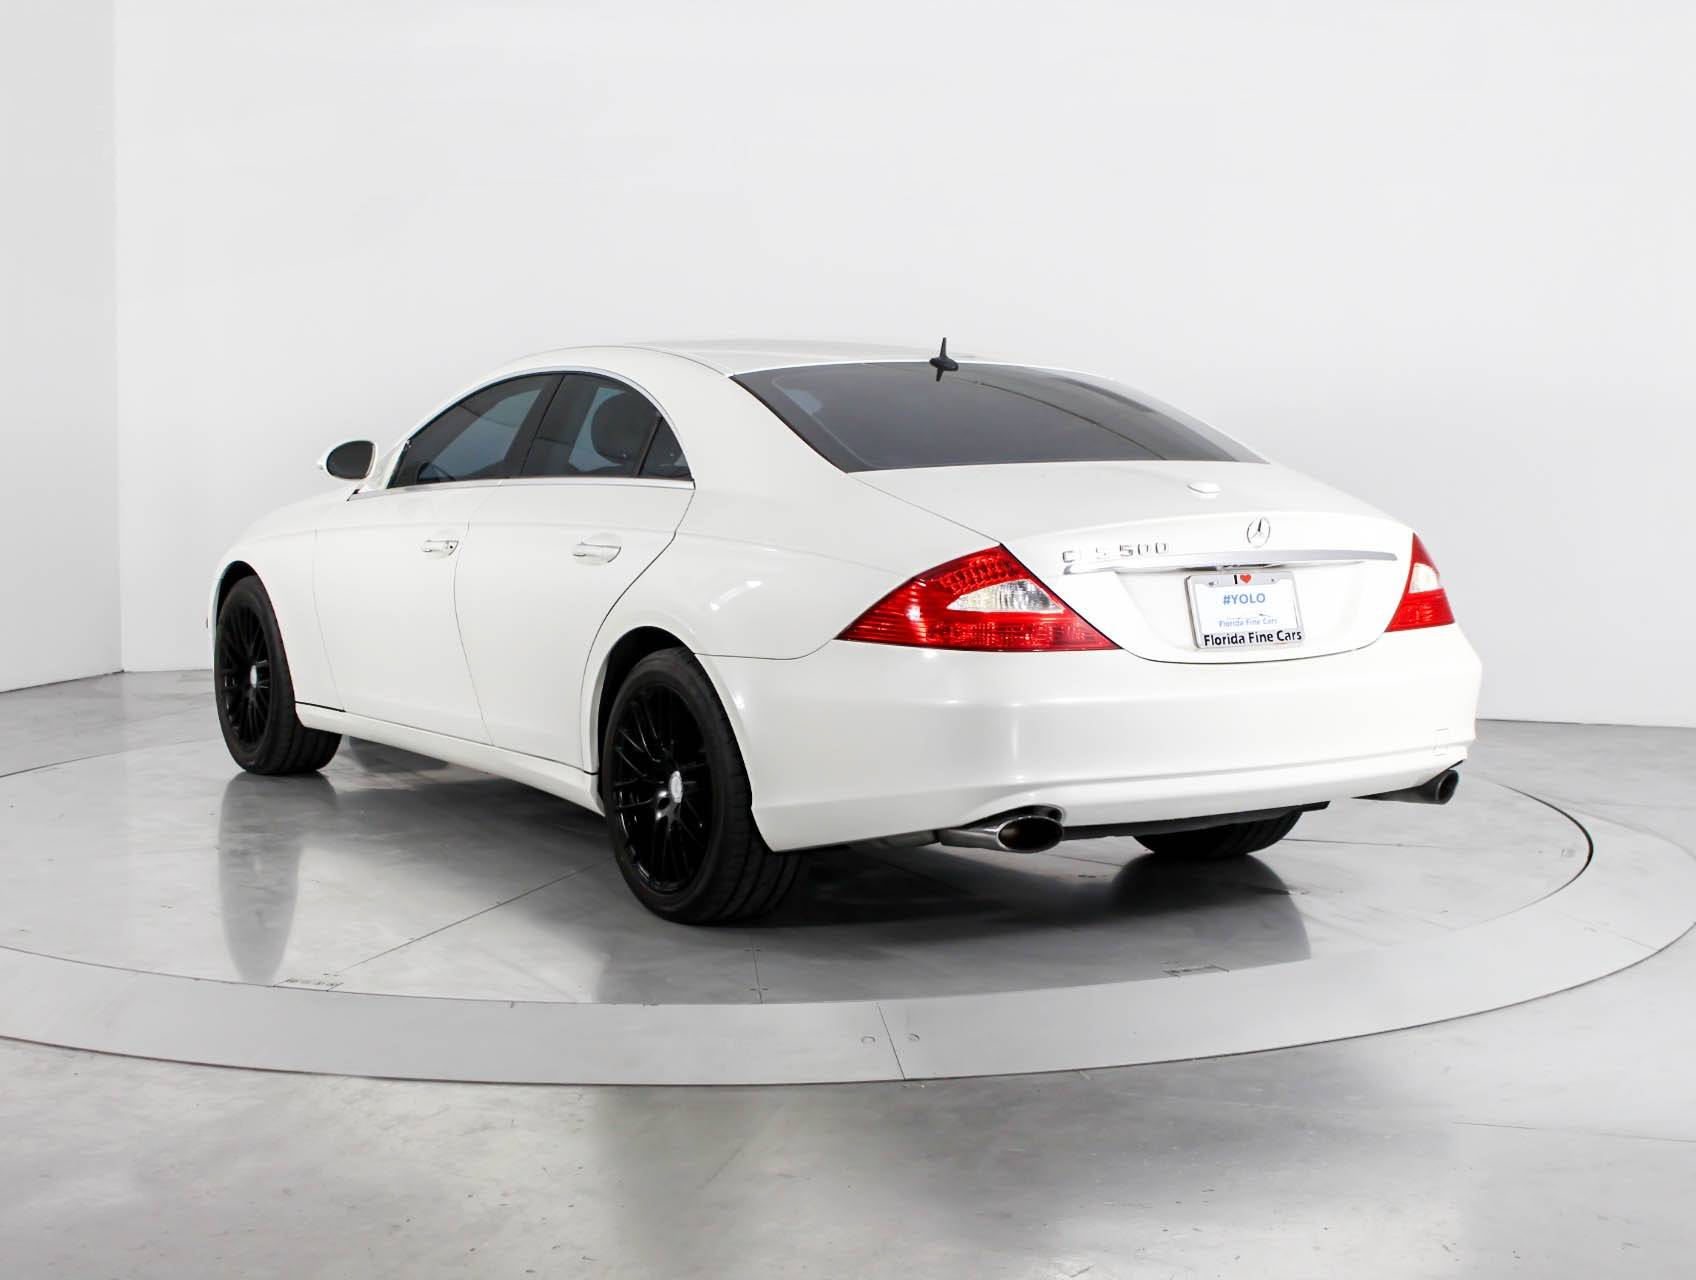 Used 2006 MERCEDES BENZ CLS CLASS CLS500 Sedan for sale in WEST PALM